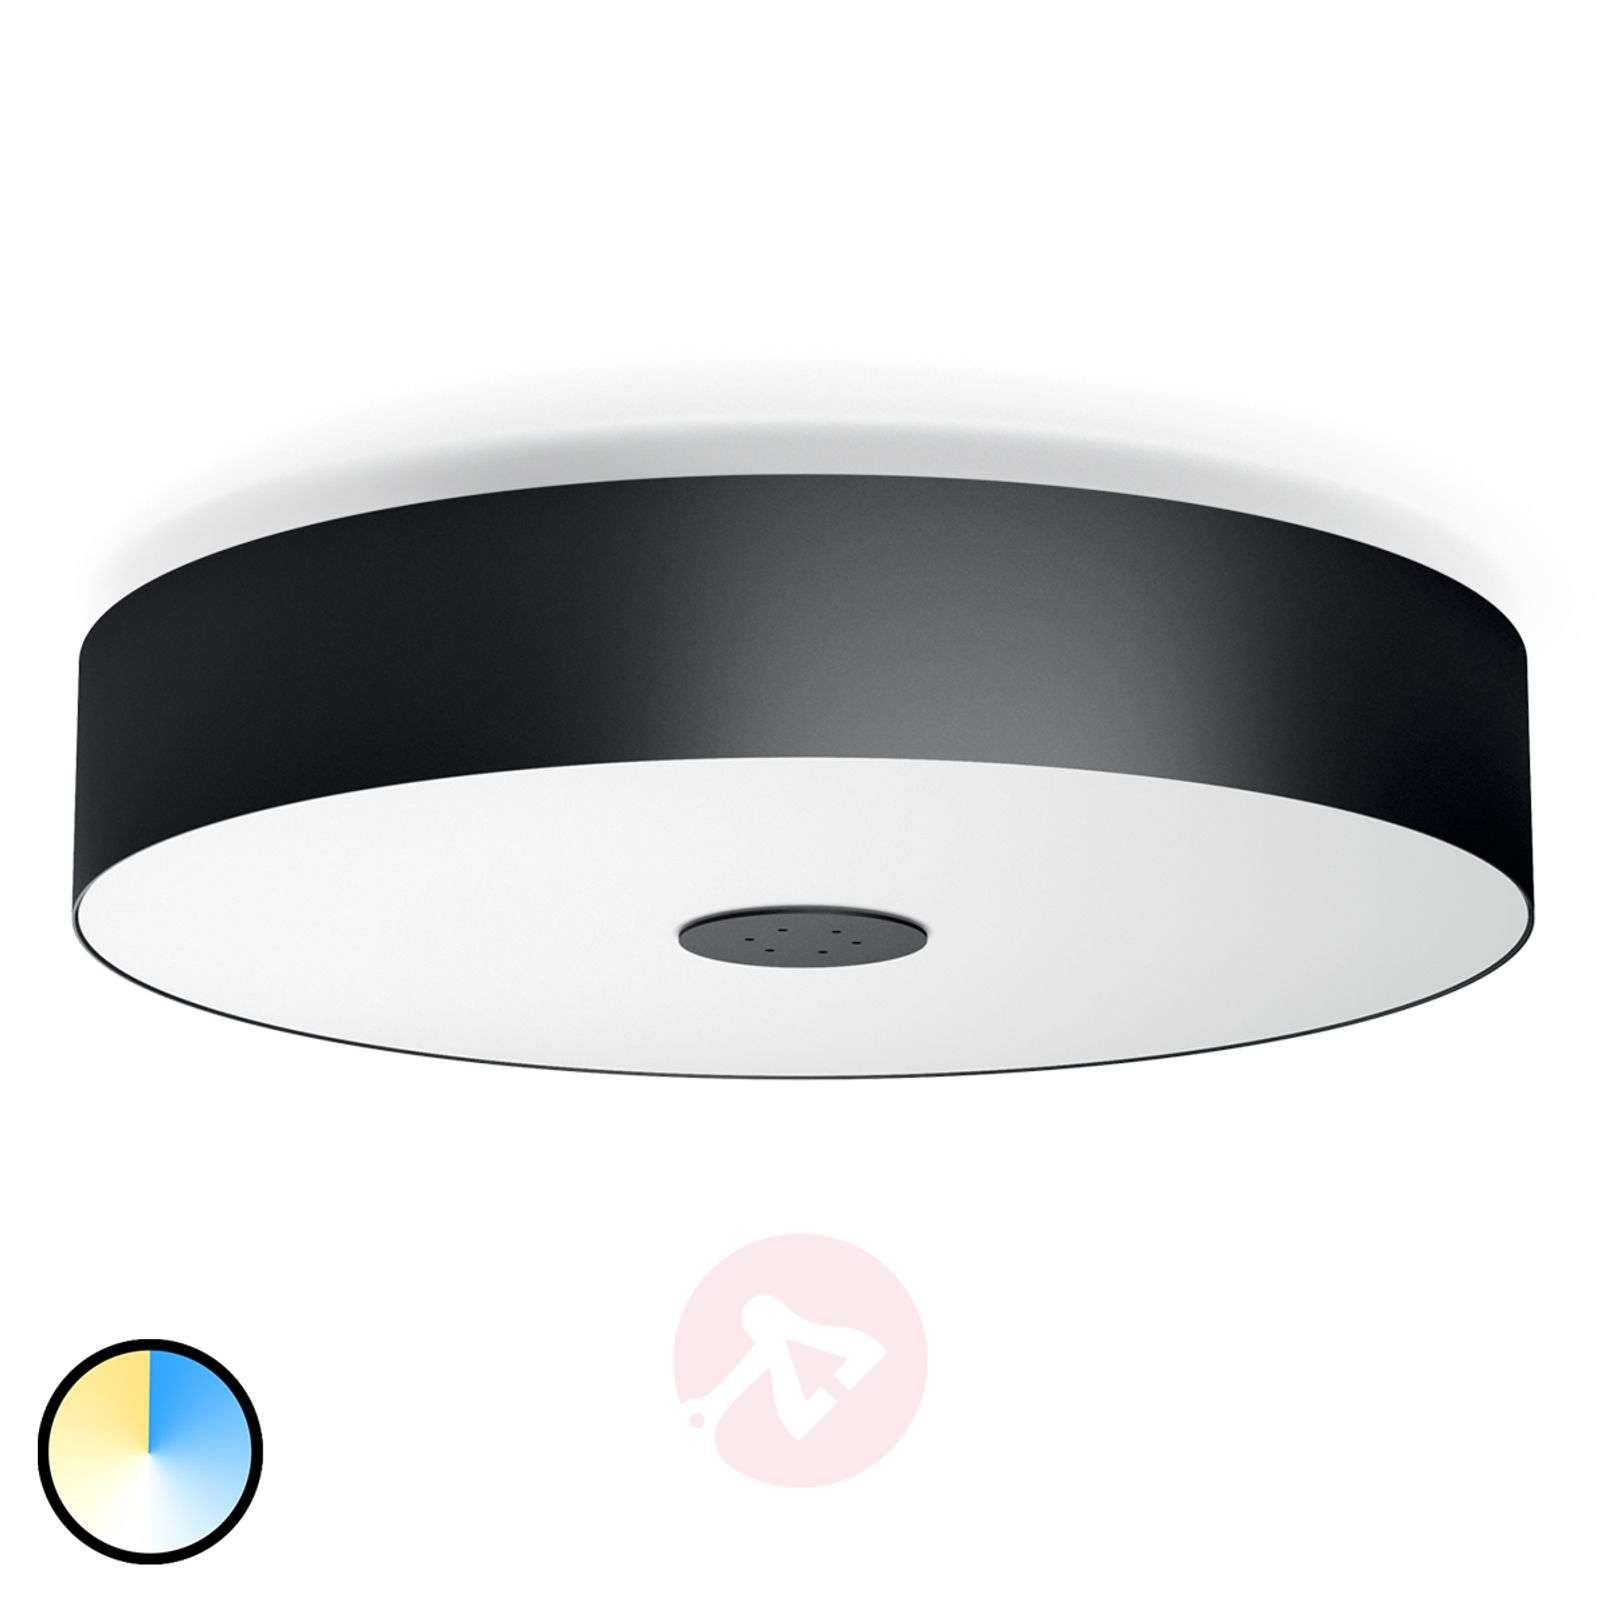 Plafoniere Esterno Philips : Acquista plafoniera a led fair philips hue lampade.it